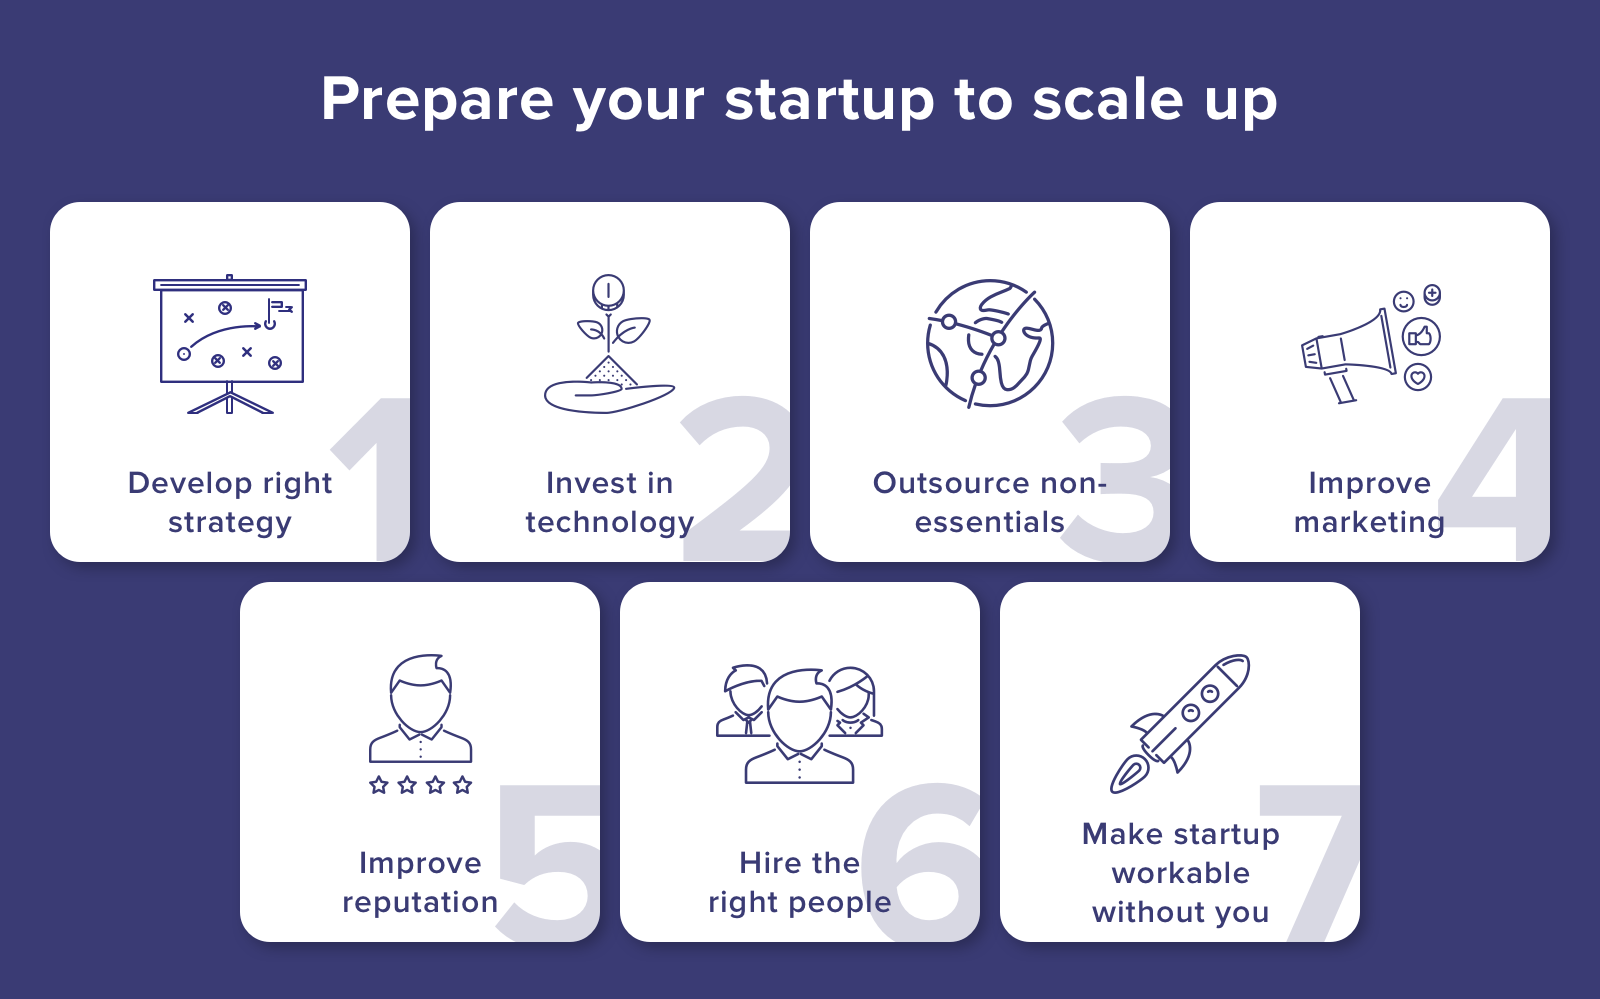 How to prepare a startup: step-by-step illustration